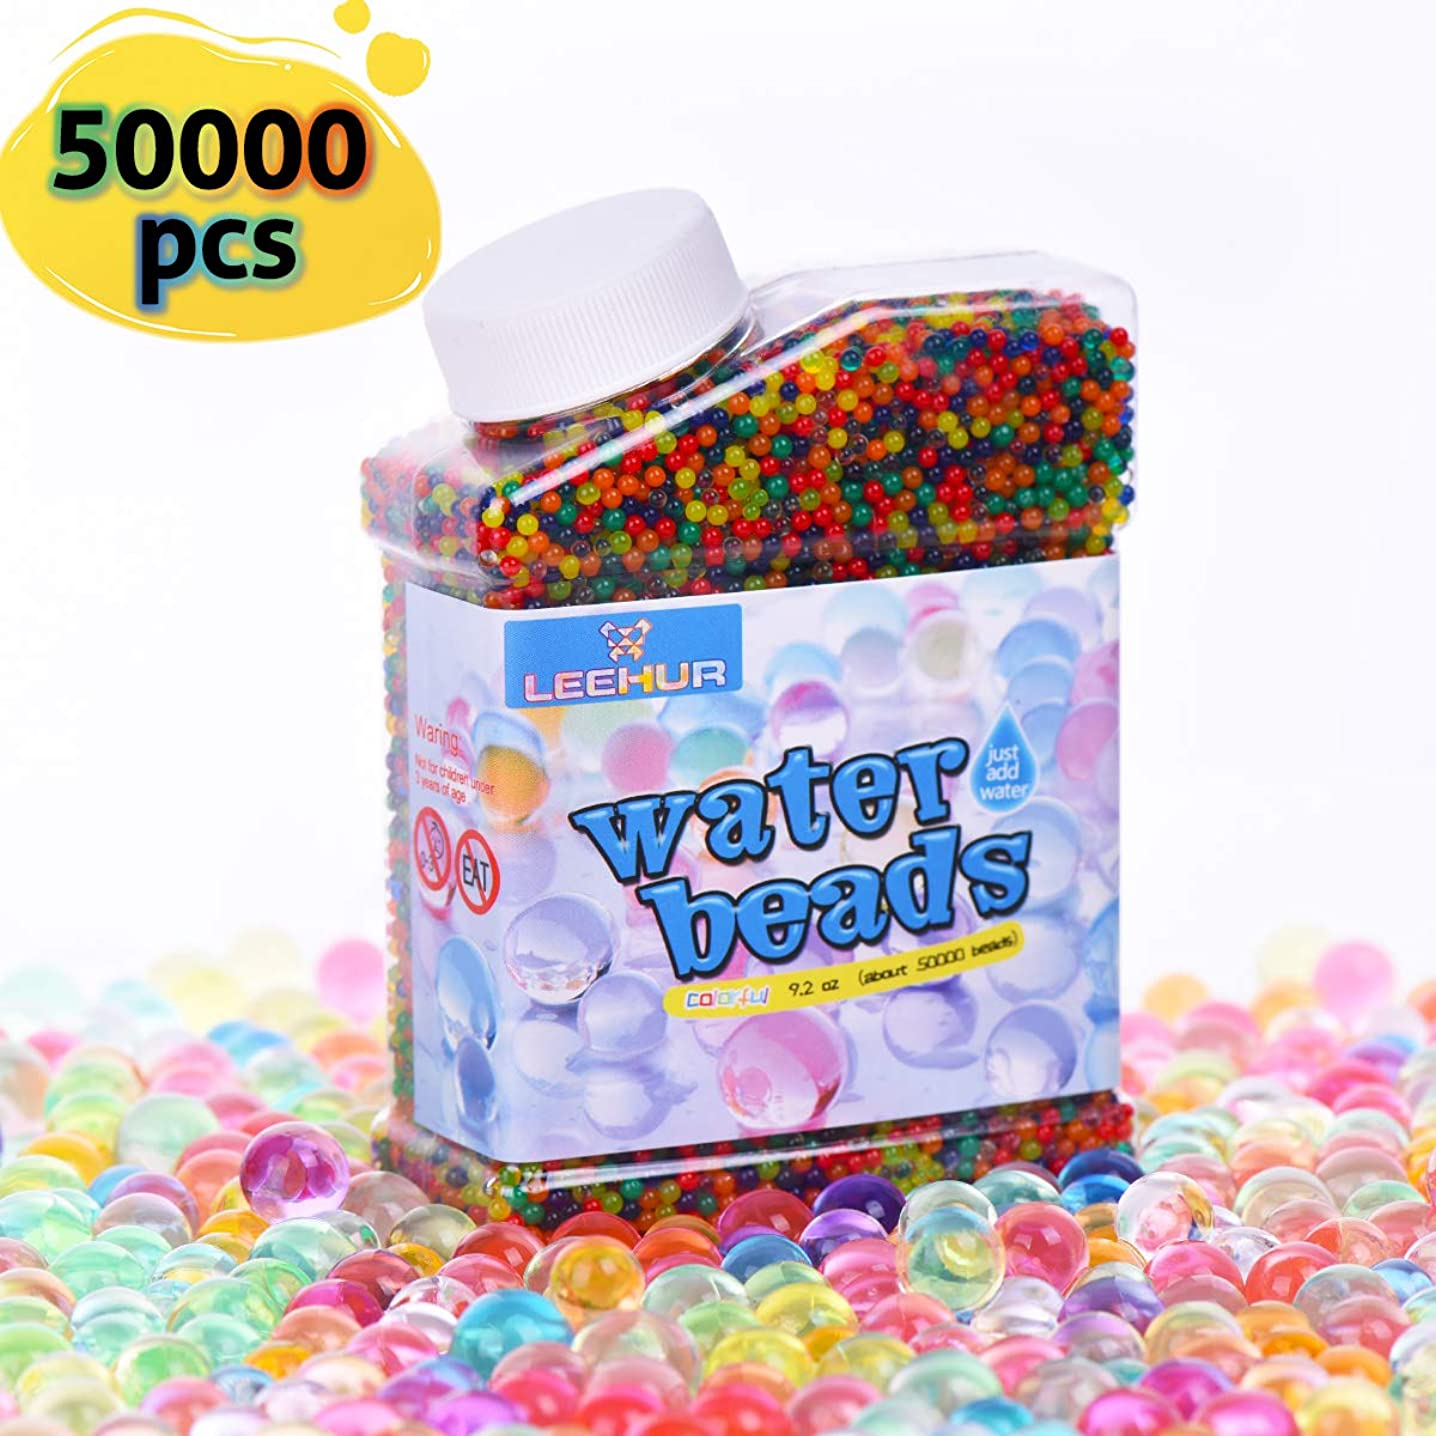 LEEHUR Soft Water Beads for Kids Non-Toxic Sensory Play Toys Rainbow Mix Gel Jelly Growing Balls Spa Refill Vases Home Outdoor Party Decoration 9 Ounces